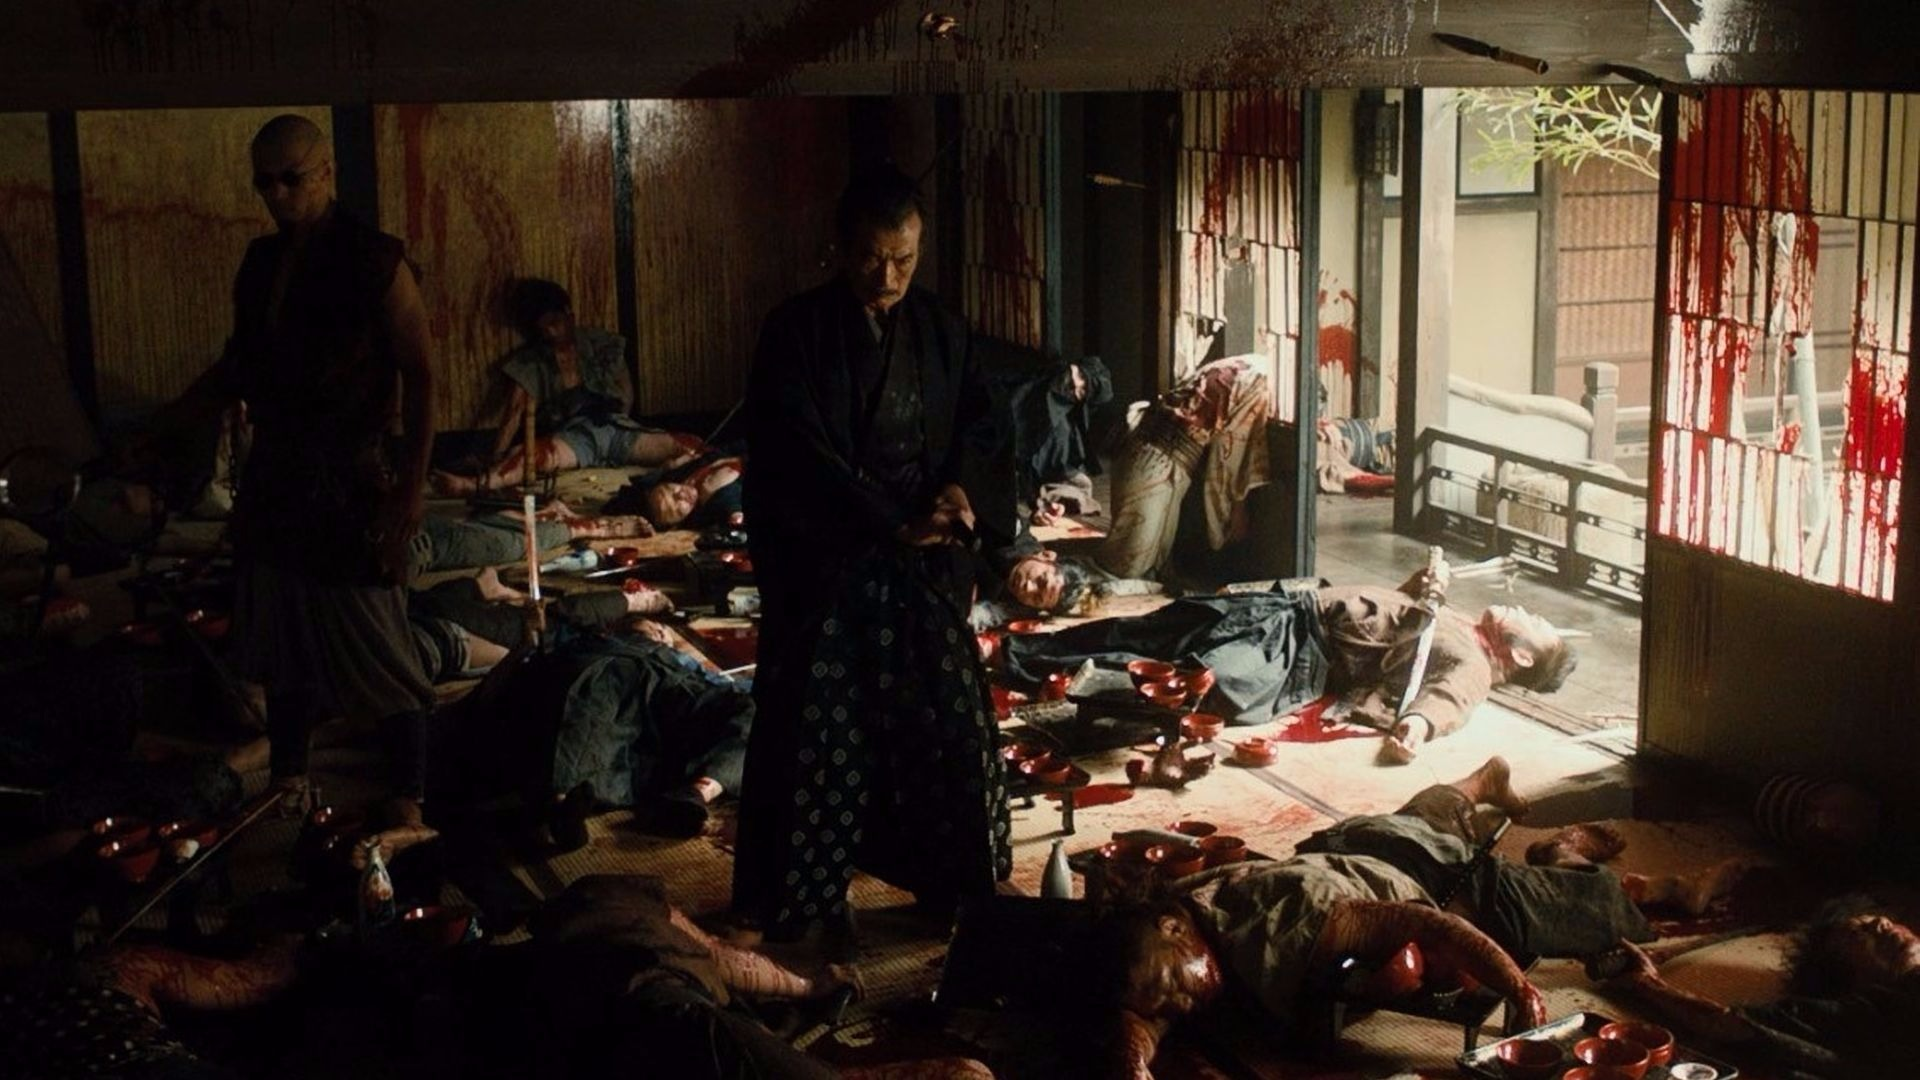 A scene from Blade of the Immortal.